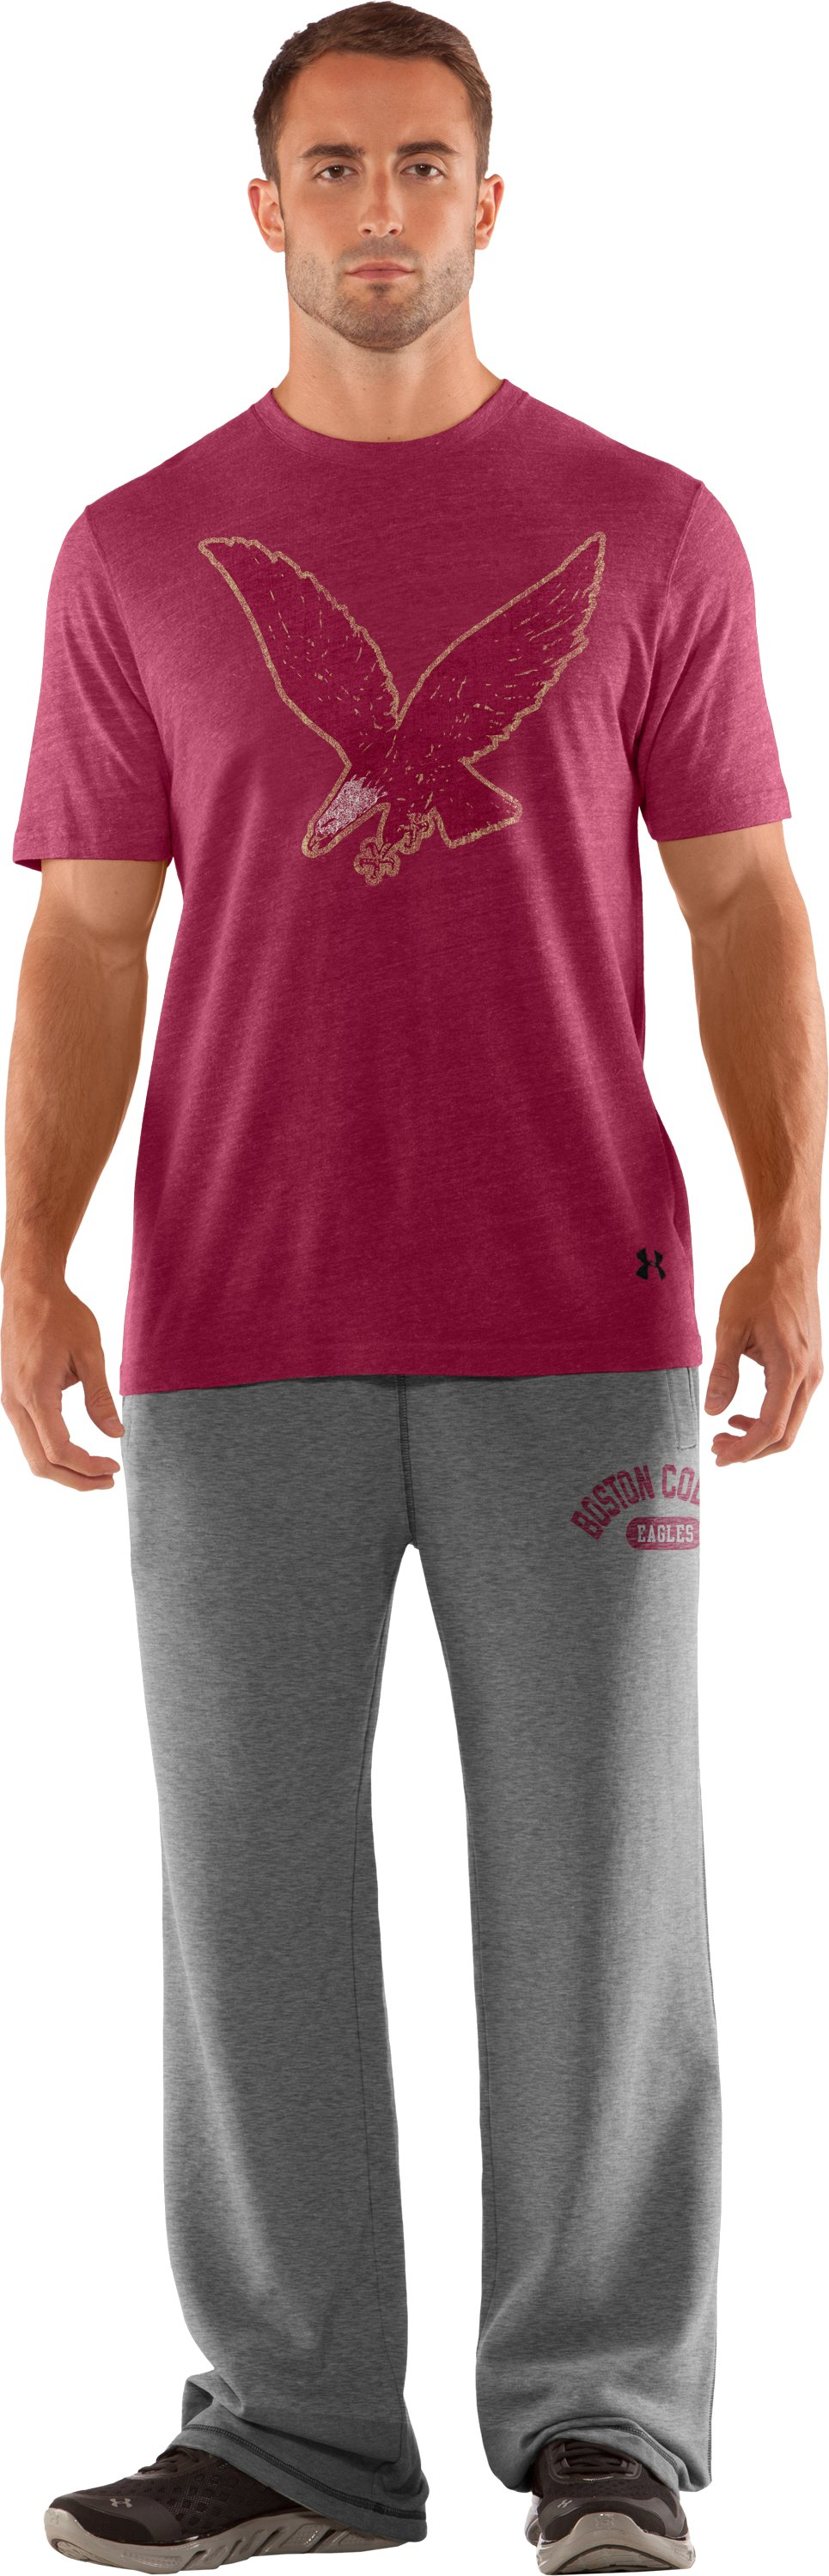 Men's Boston College Under Armour® Legacy Pants, True Gray Heather